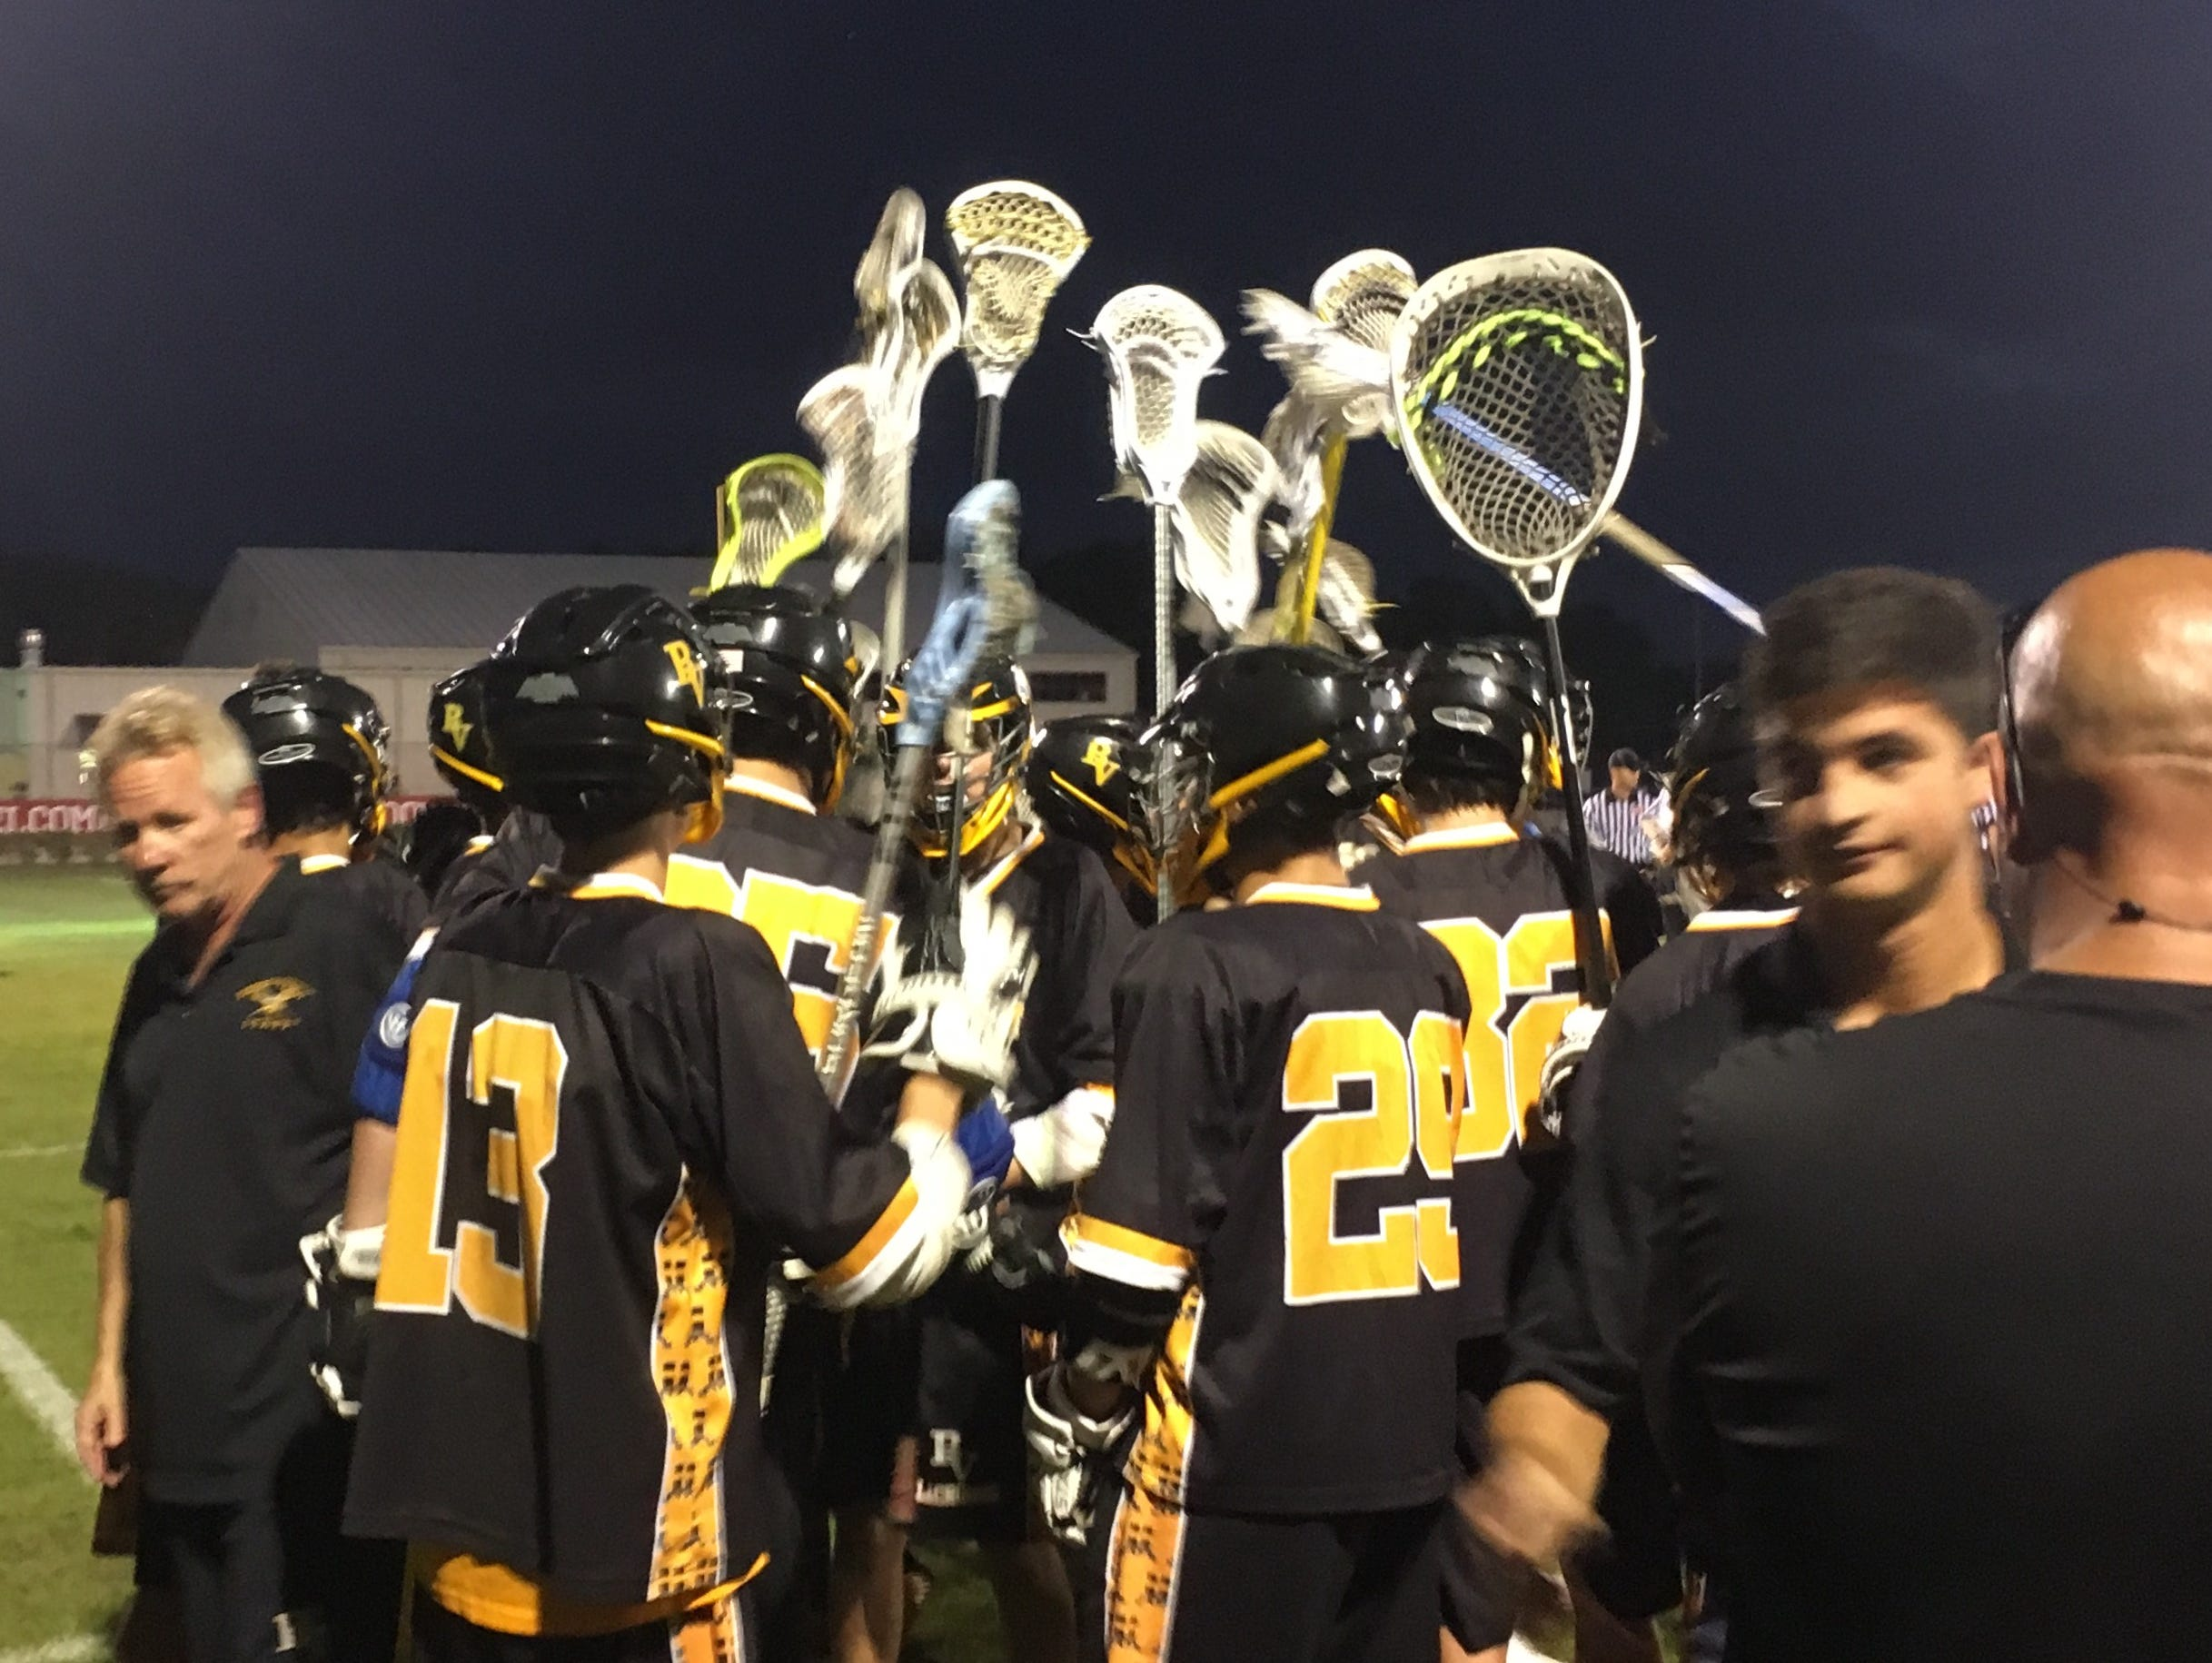 The Bishop Verot boys lacrosse team breaks the huddle after a timeout during its 12-4 loss at Sarasota Cardinal Mooney in a first-round play-in game Friday.